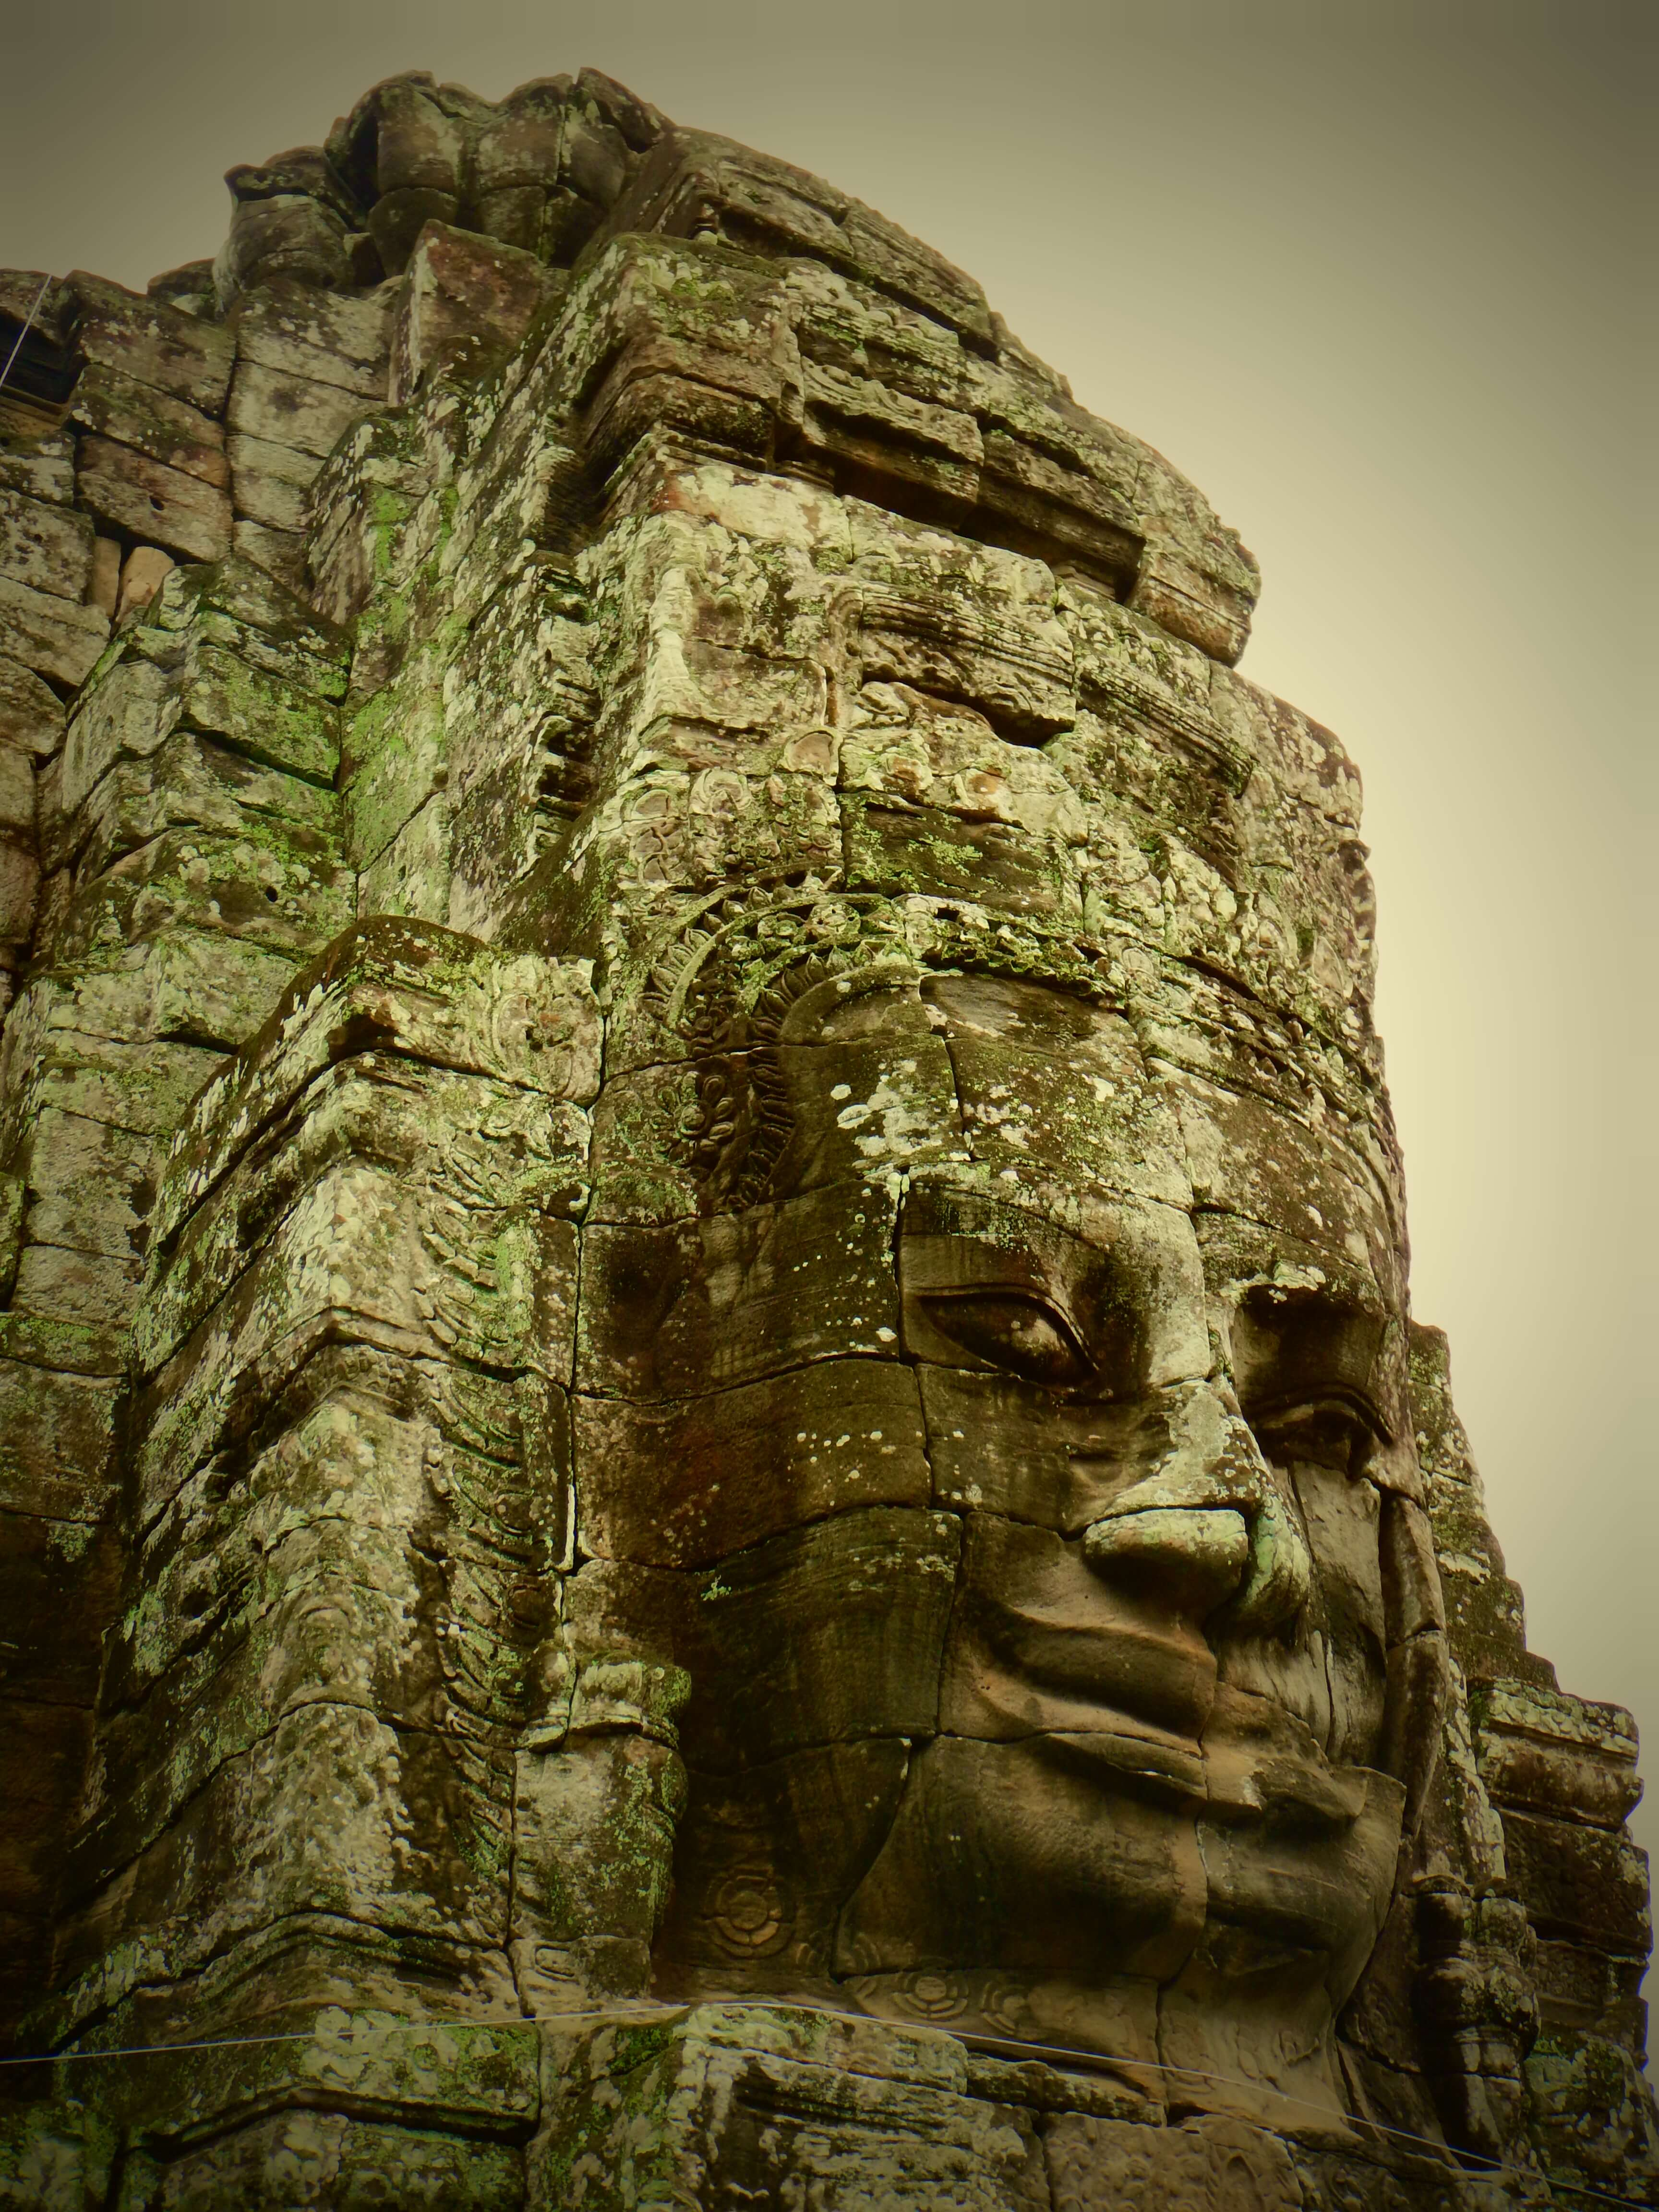 Catching the morning light on a face at Bayon Temple. Siem Reap, Cambodia.